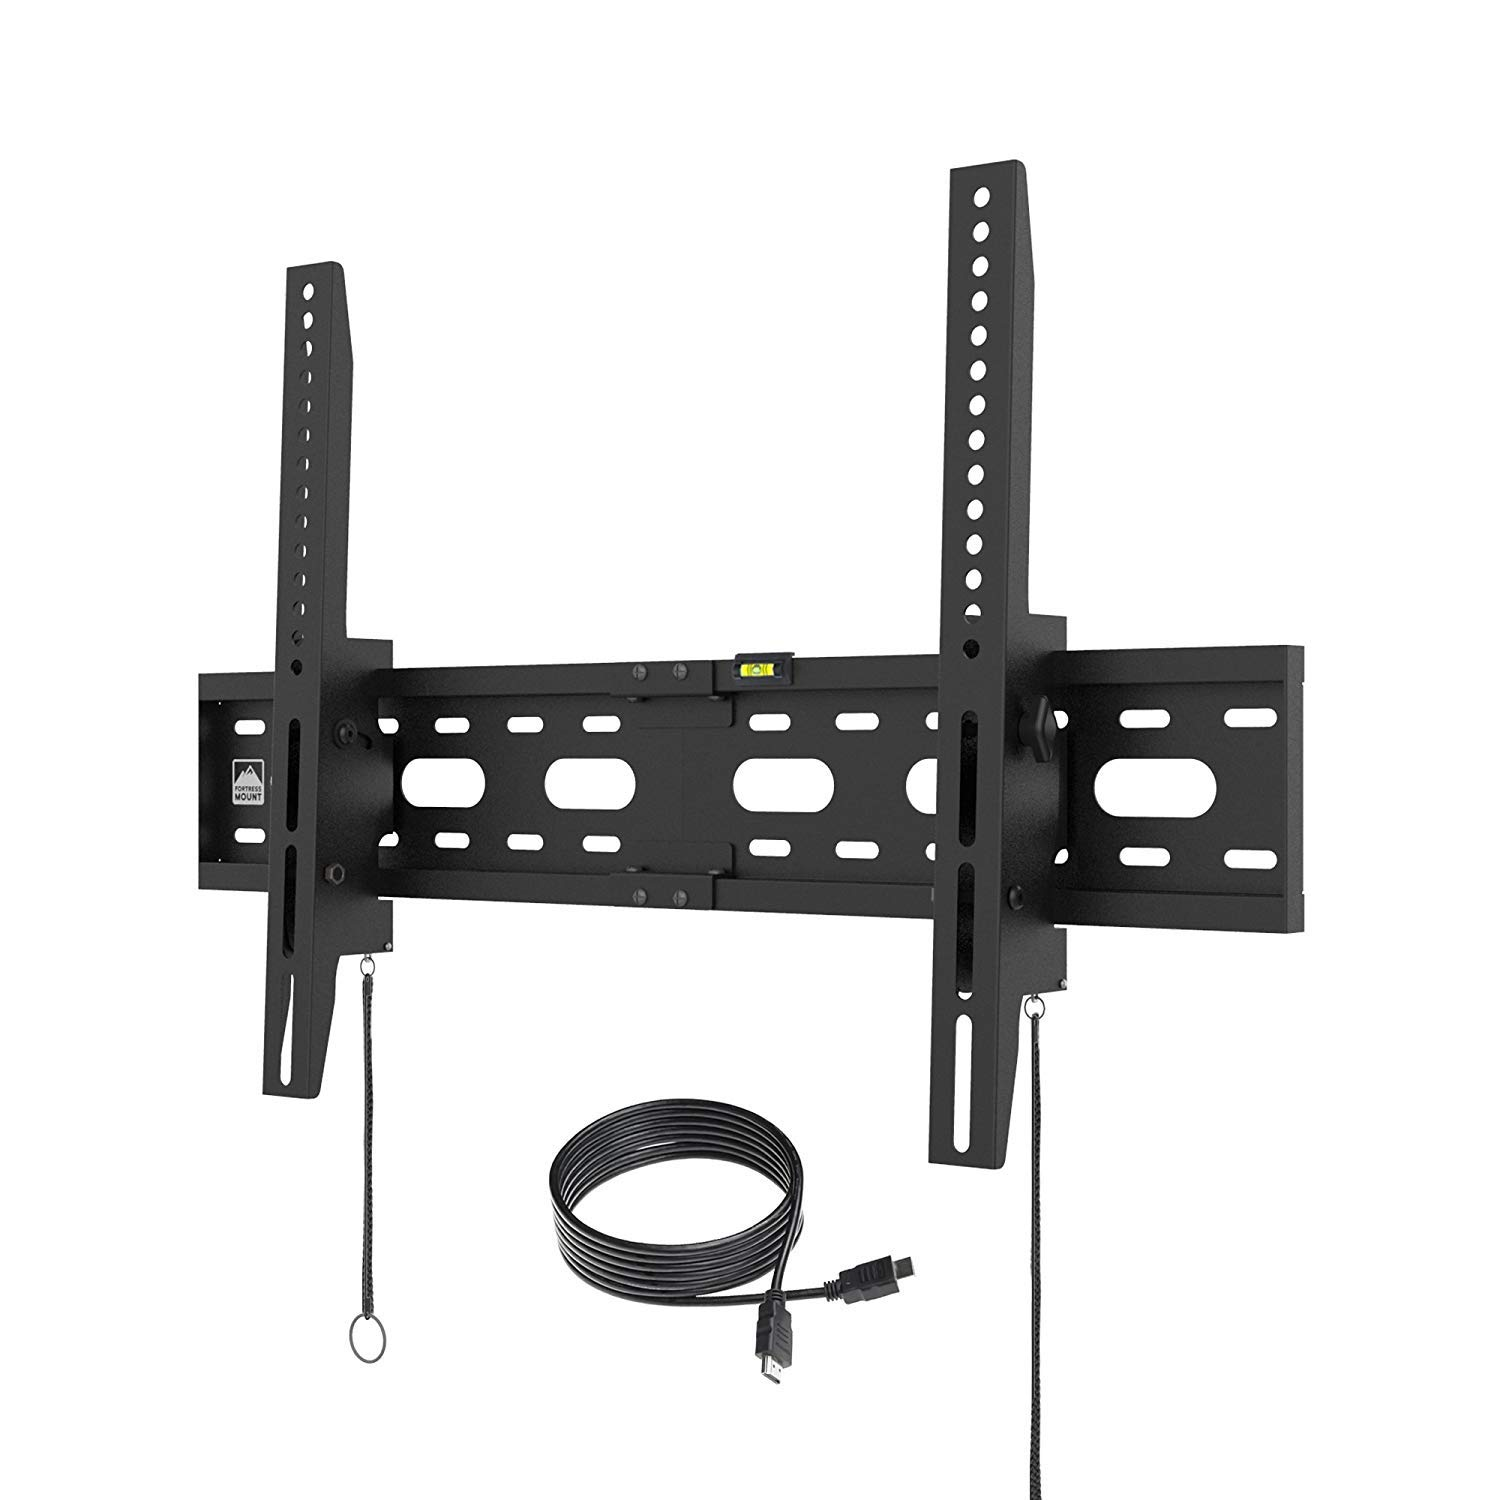 Fortress Mount TV Wall Mount for Most 40-75'' TVs up to 165 lbs and 9-feet HDMI Cable by Fortress Mount